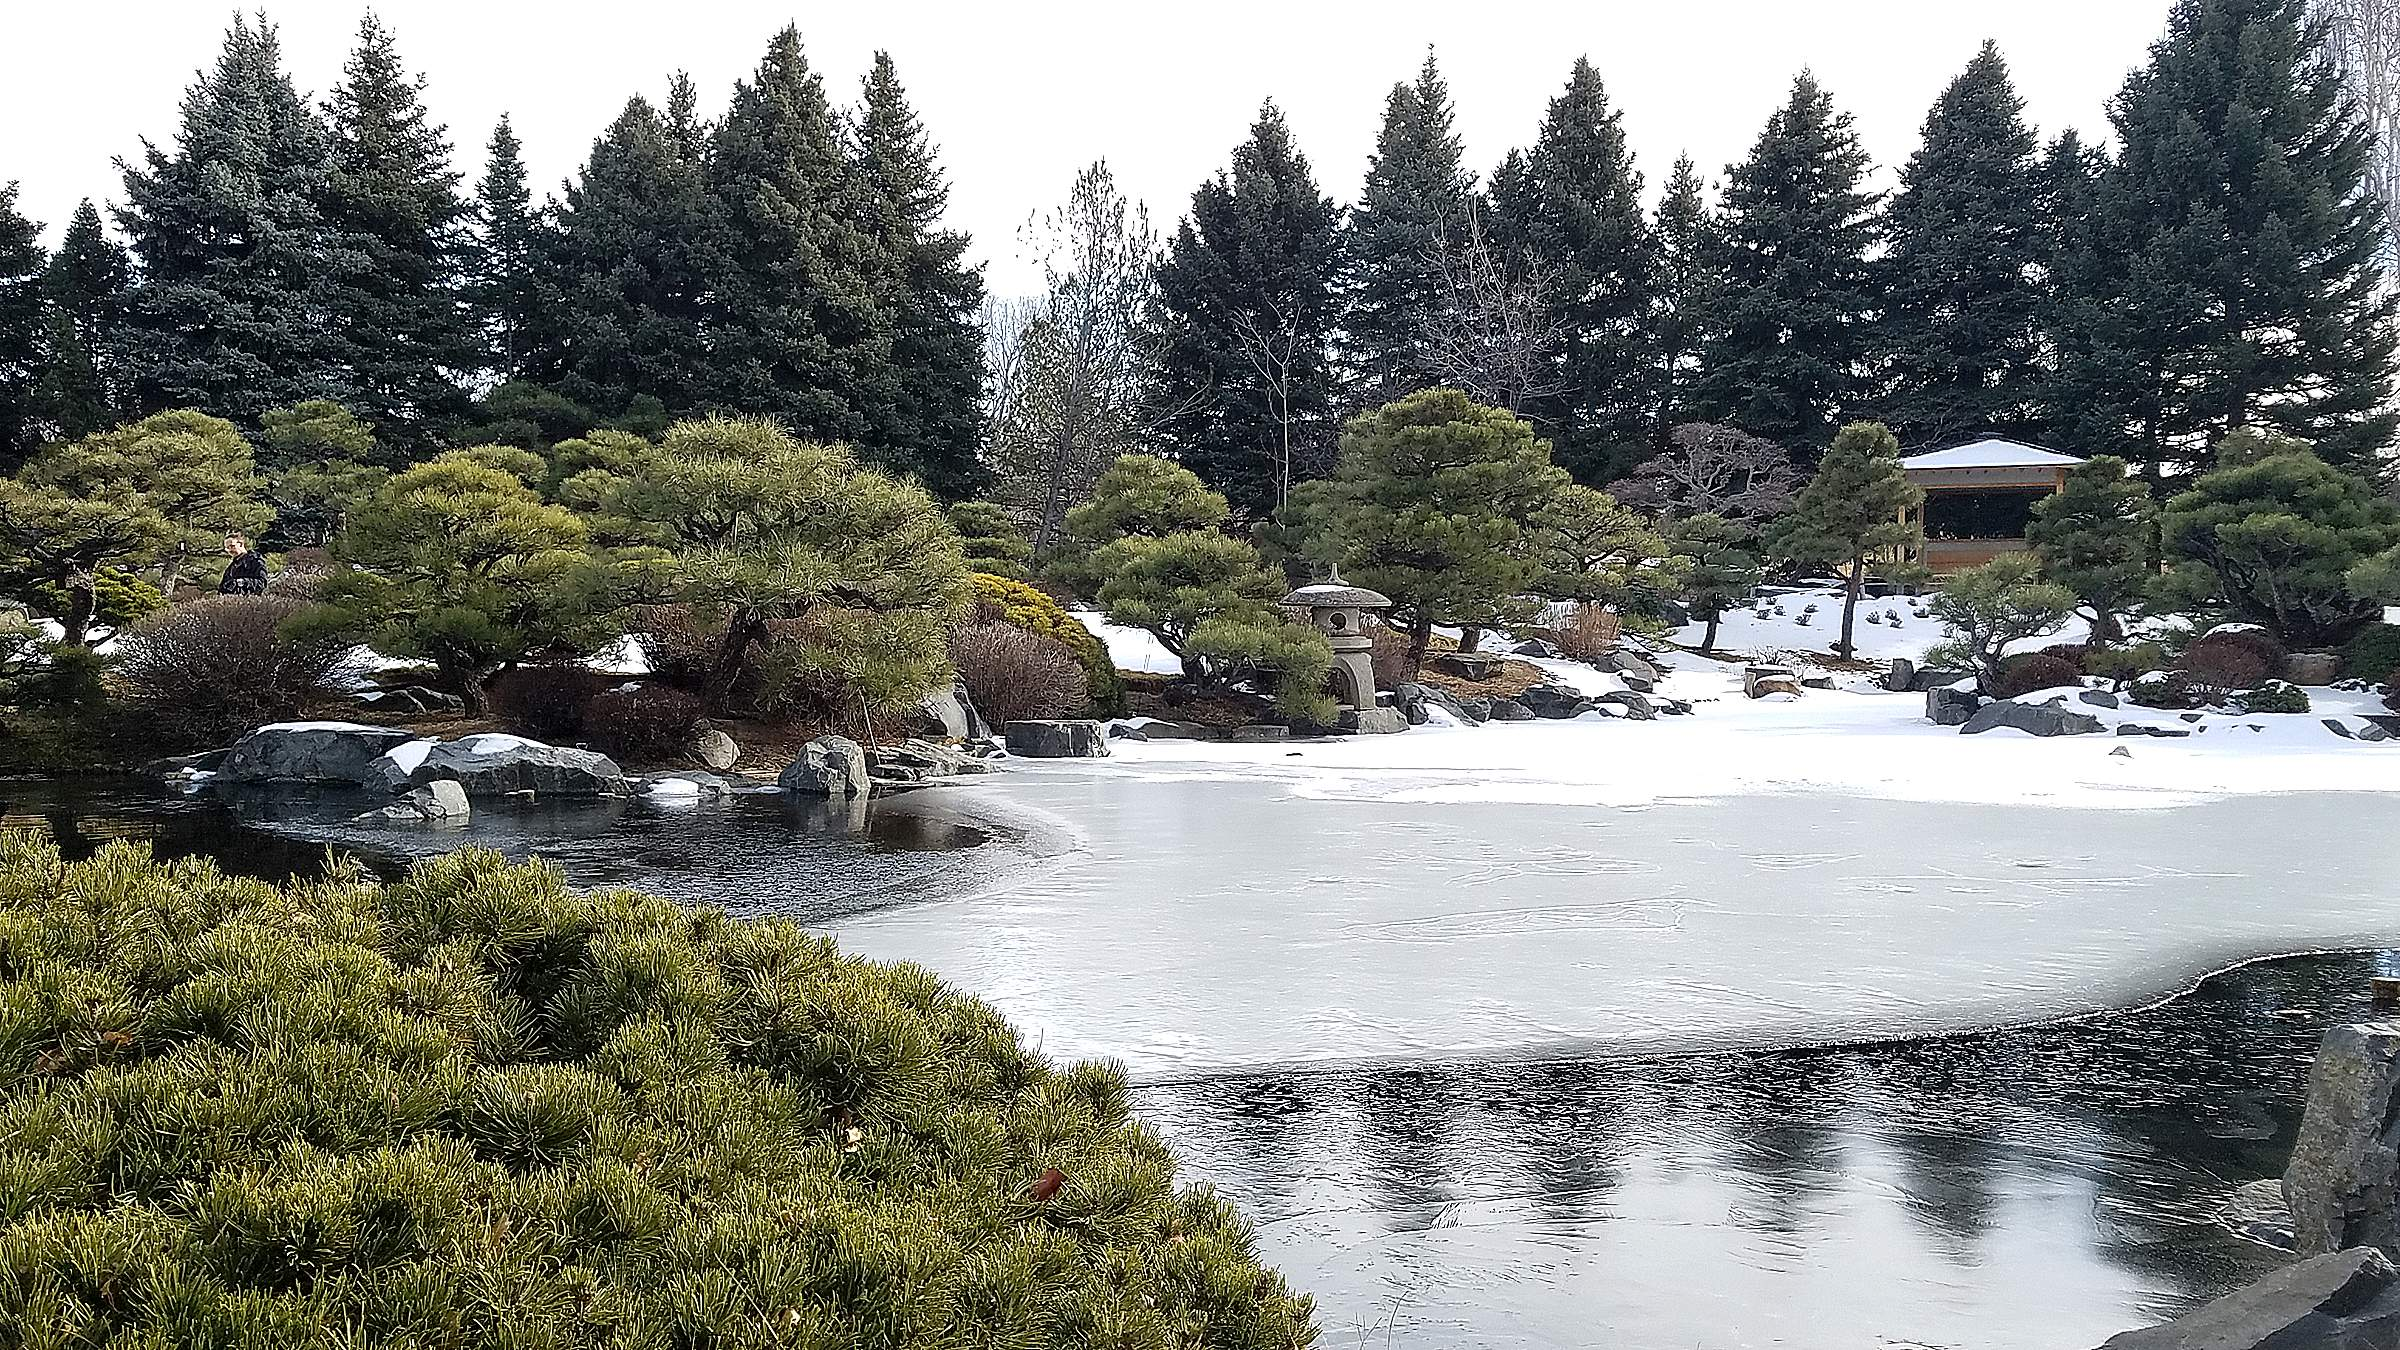 The Partially Frozen Ponds In The Japanese Garden At Denver Botanic Gardens  York Street Make A Serene Winterscape In January.